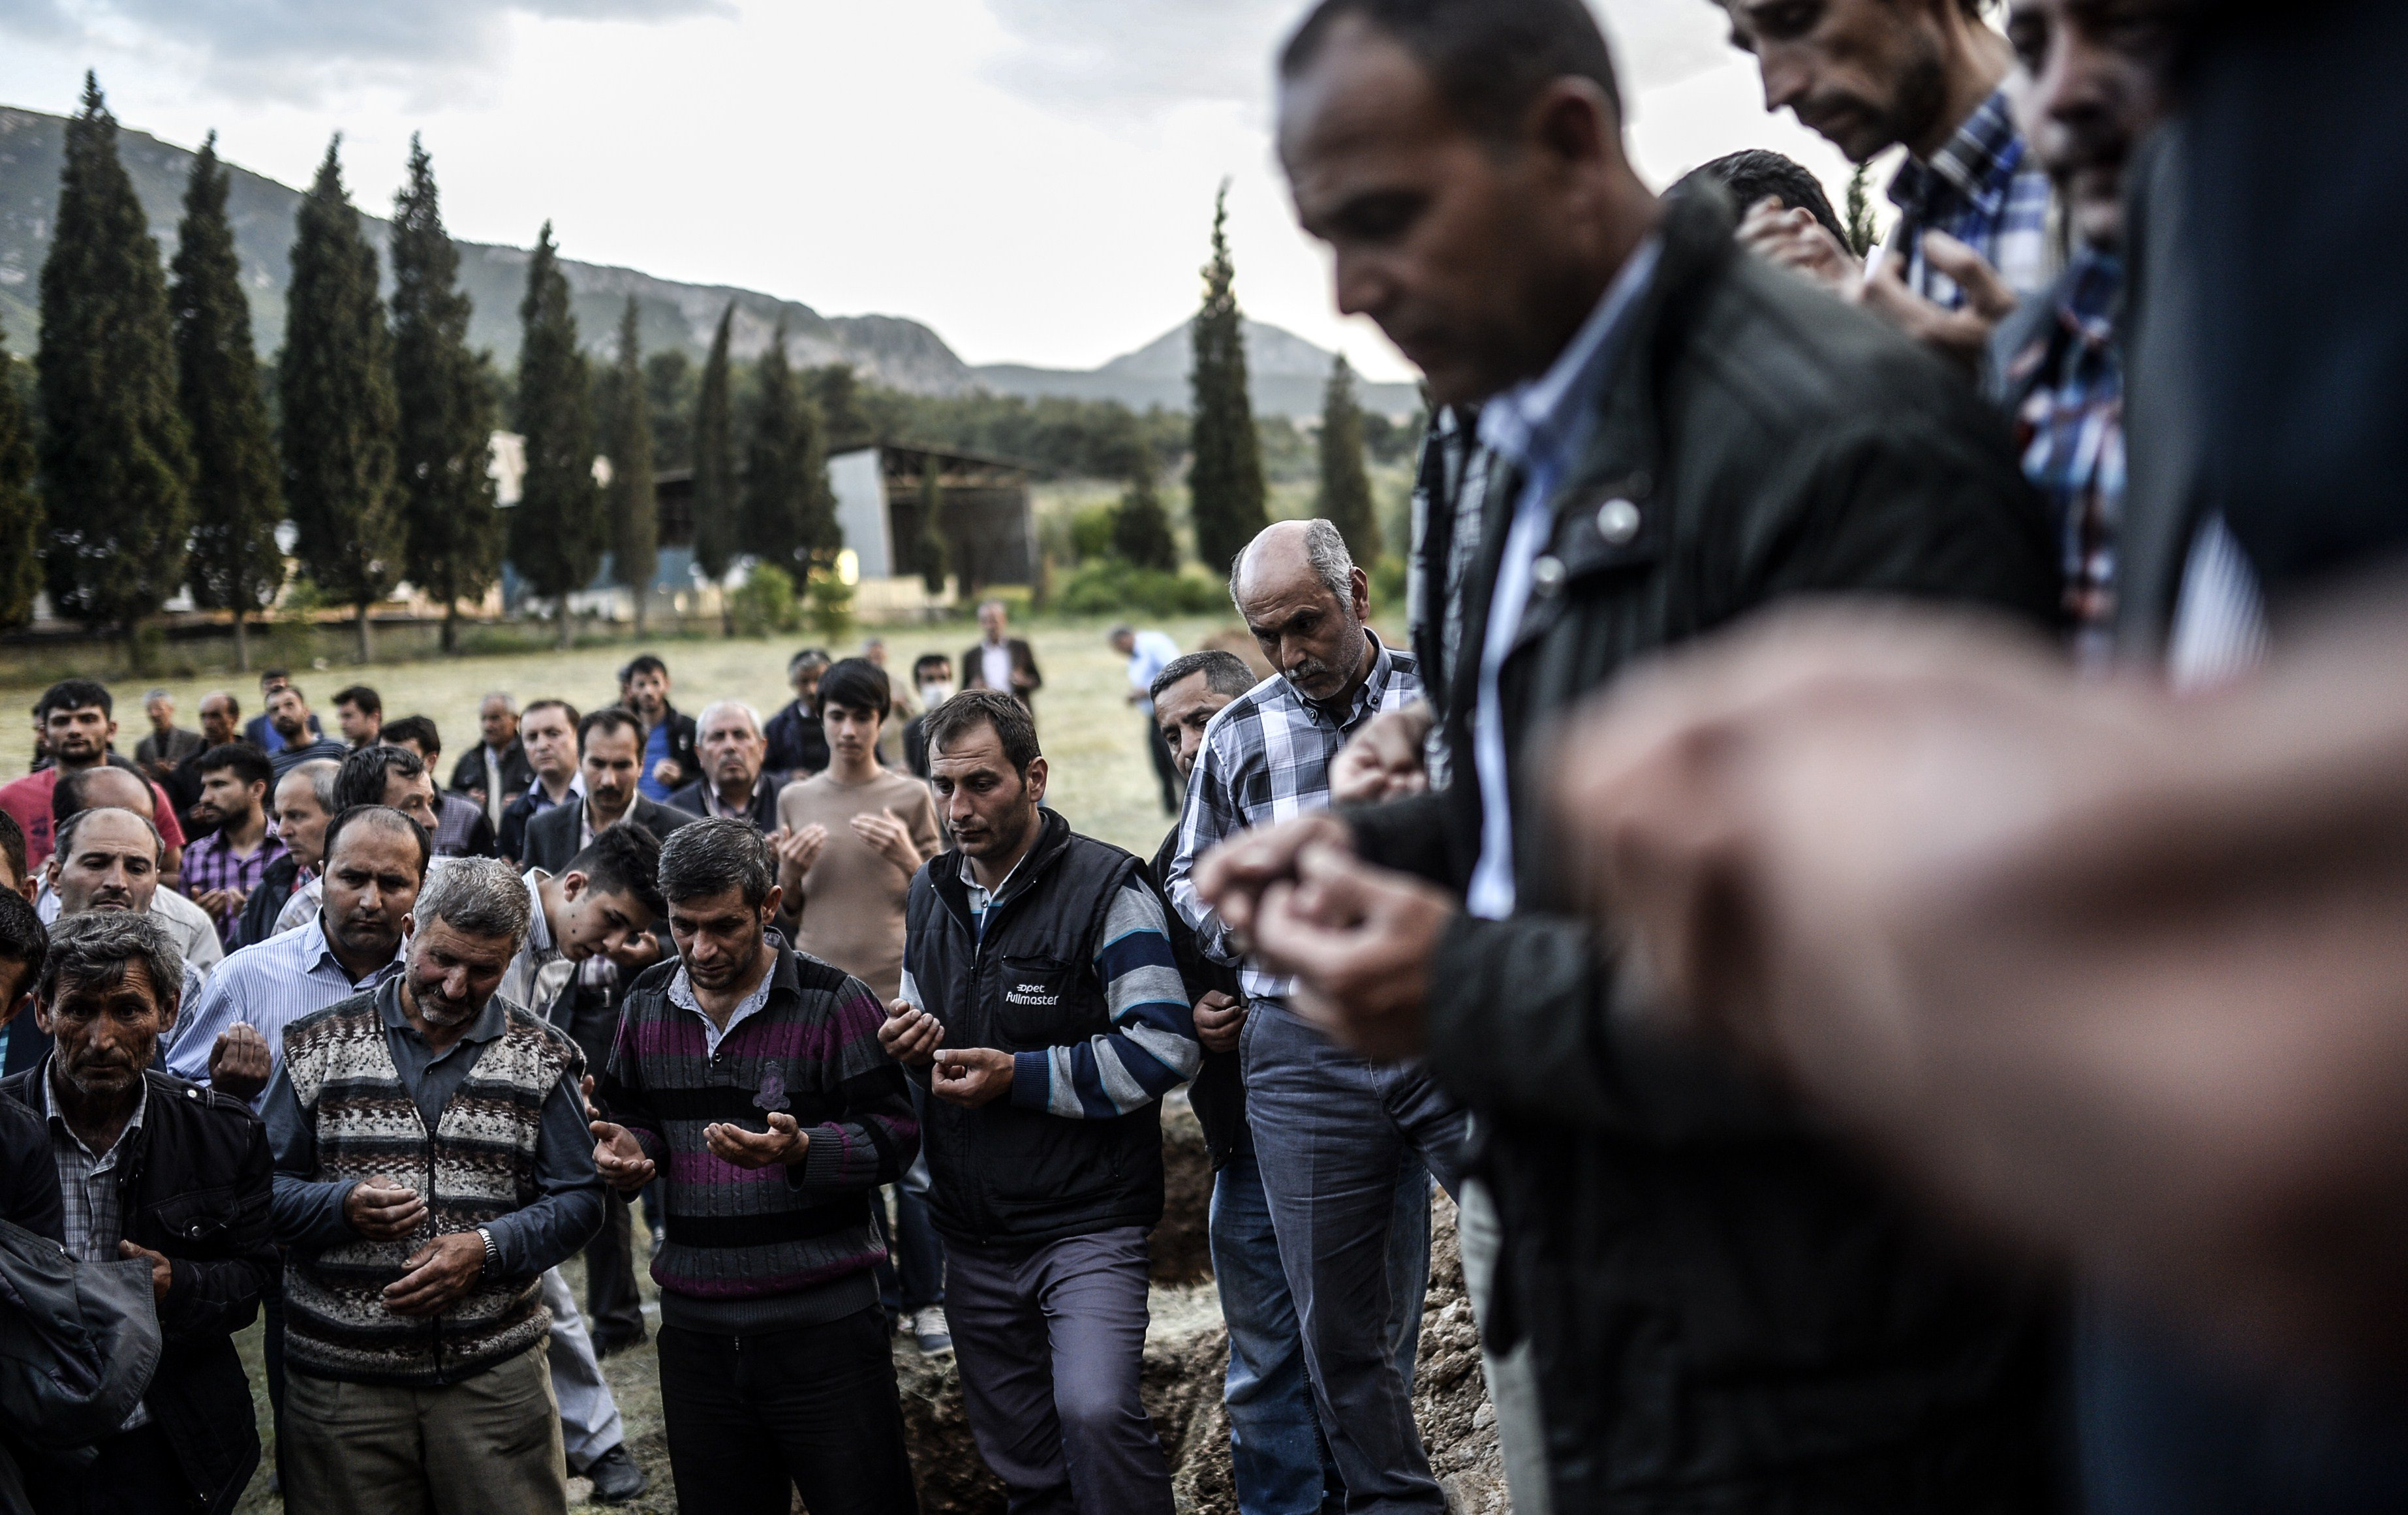 Turkish people mourn in a cemetary in Manisa on May 14, 2014, during the funeral of miners killed in a mine blast the day before in the western Turkish province of Manisa.